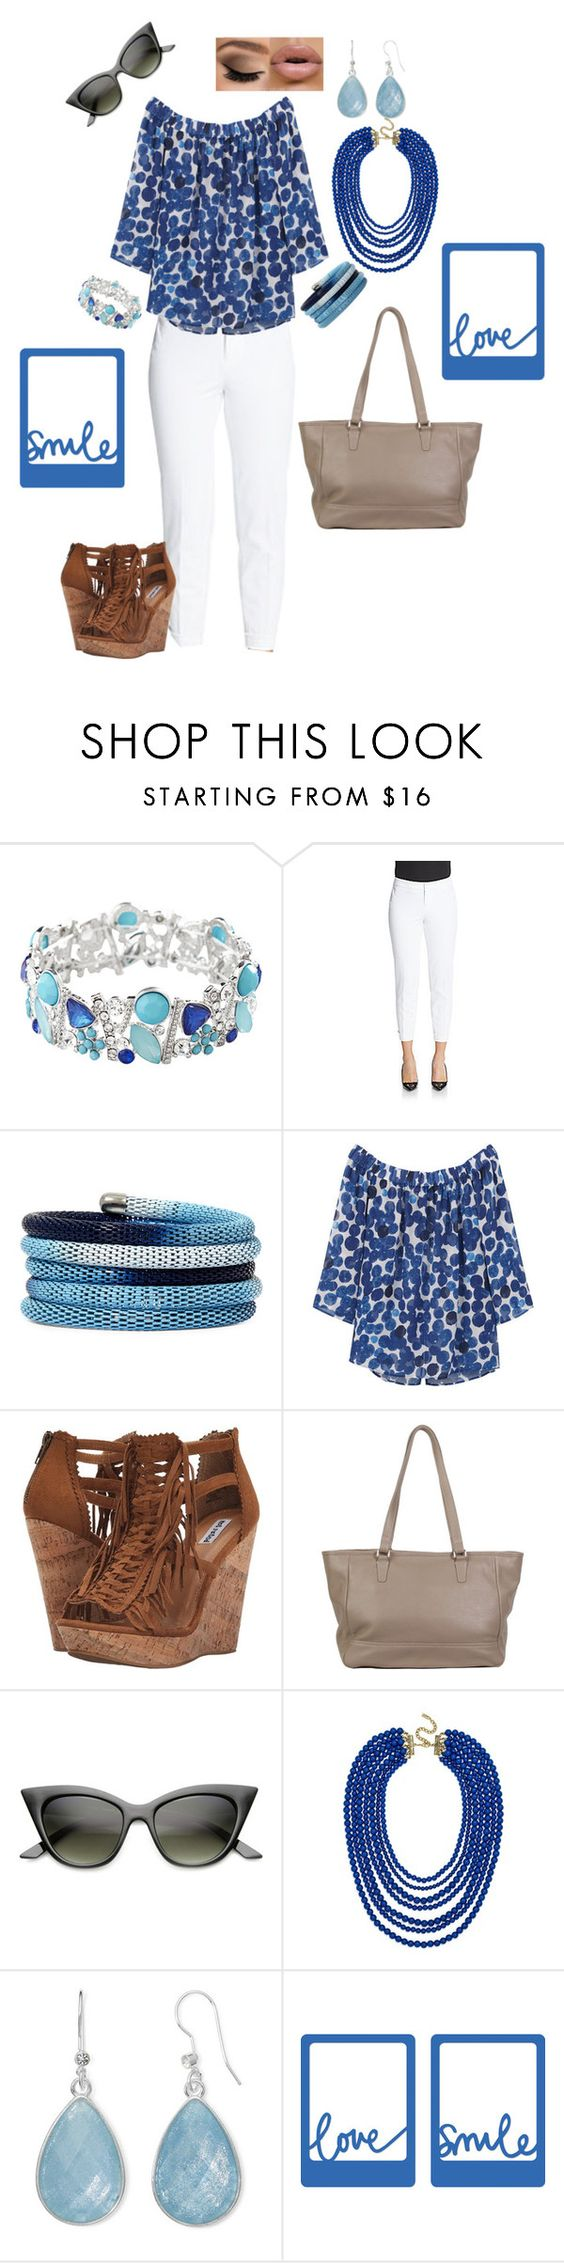 """Not feeling blue"" by angie-ryherd-brown on Polyvore featuring Avenue, Saks Fifth Avenue, Nicole By Nicole Miller, MANGO, Not Rated, BaubleBar and Liz Claiborne"